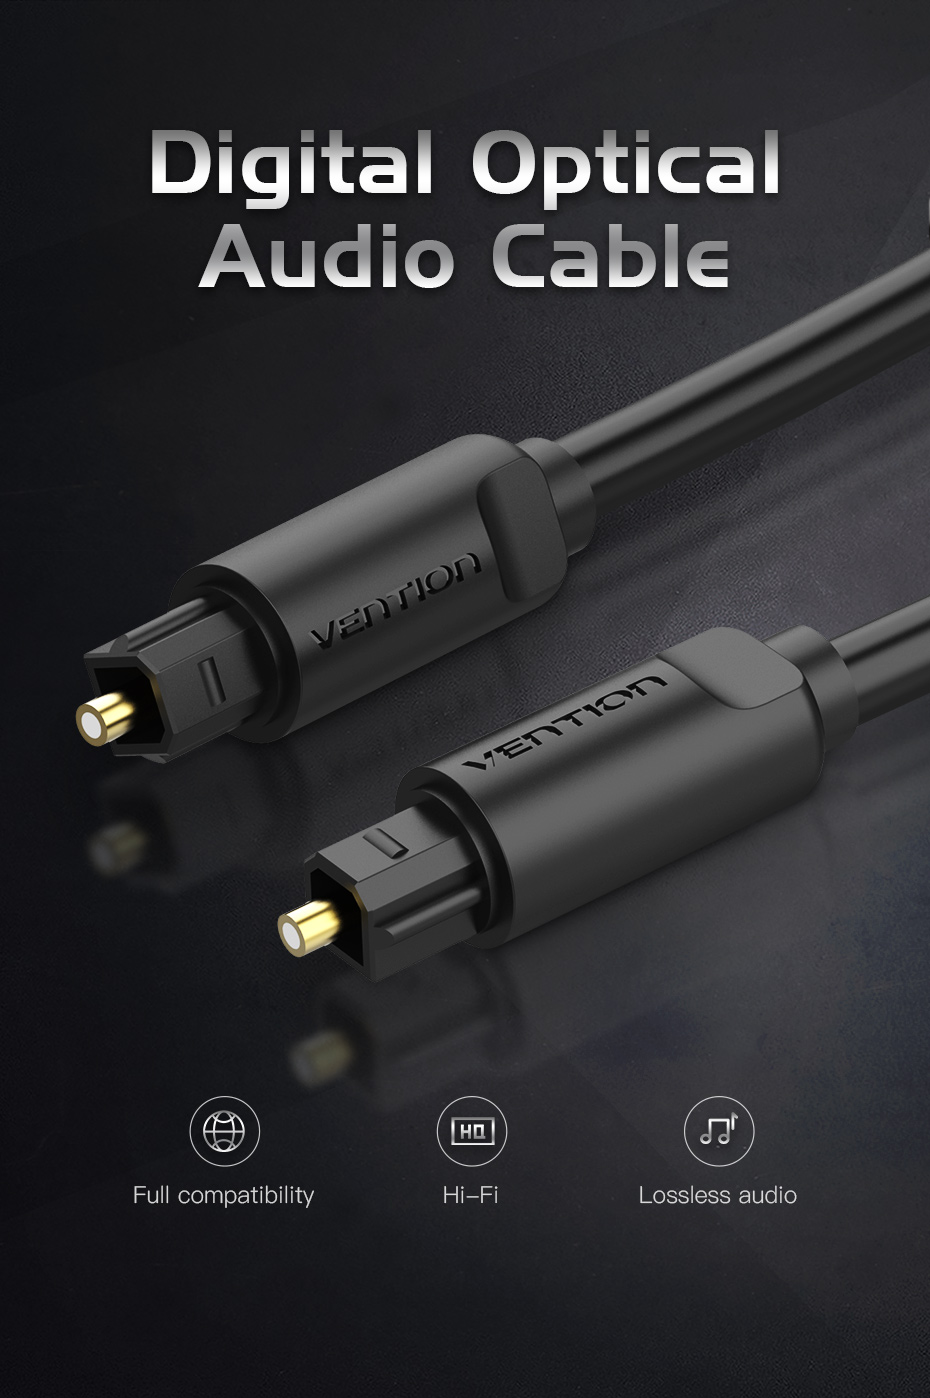 Home Theater PS4 Smart TV VENTION Fiber Toslink Audio Cable for Blu-ray CD DVD 6ft//2m Xbox Digital Optical Audio Cable